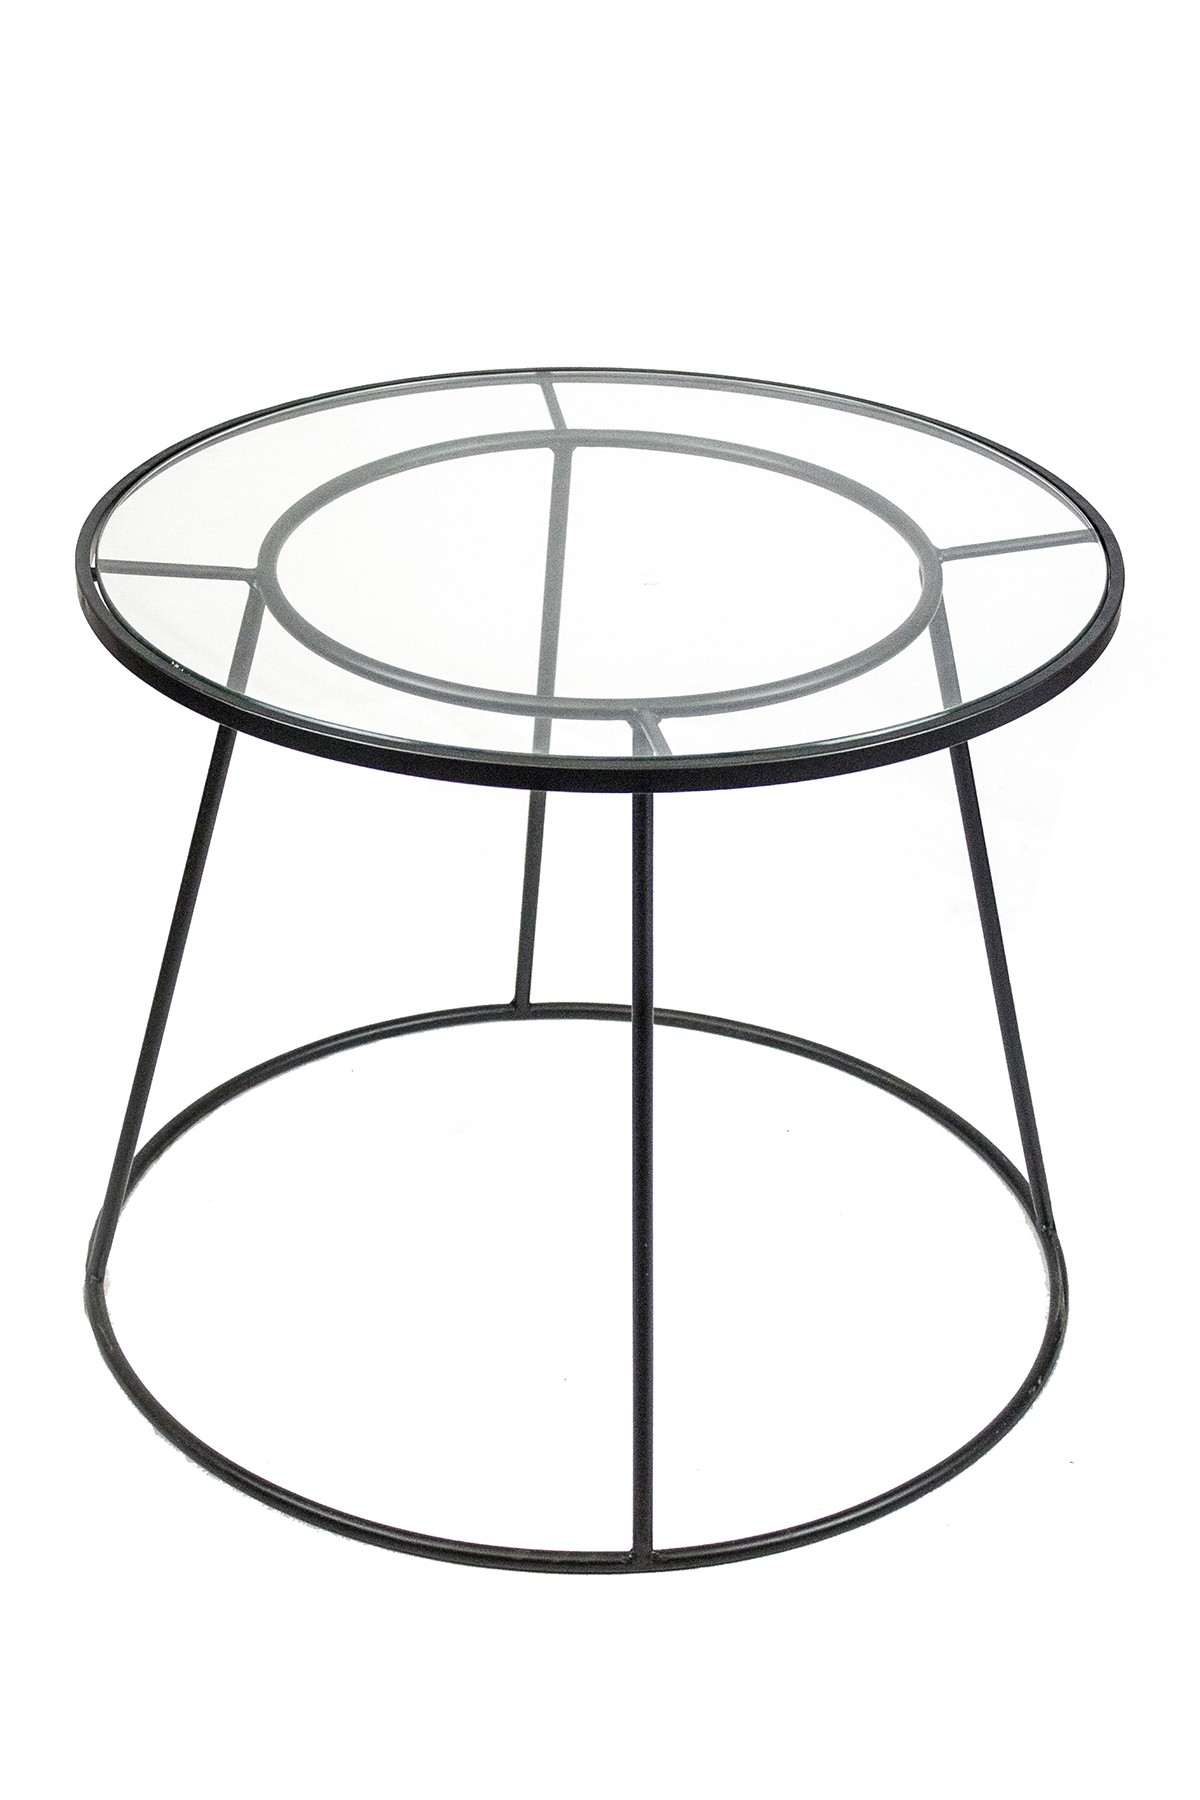 sagebrook home black metal glass accent table nordstrom rack diy pottery barn round chair patio sofa wall high console turquoise coffee red tables decor mid century desk zinc